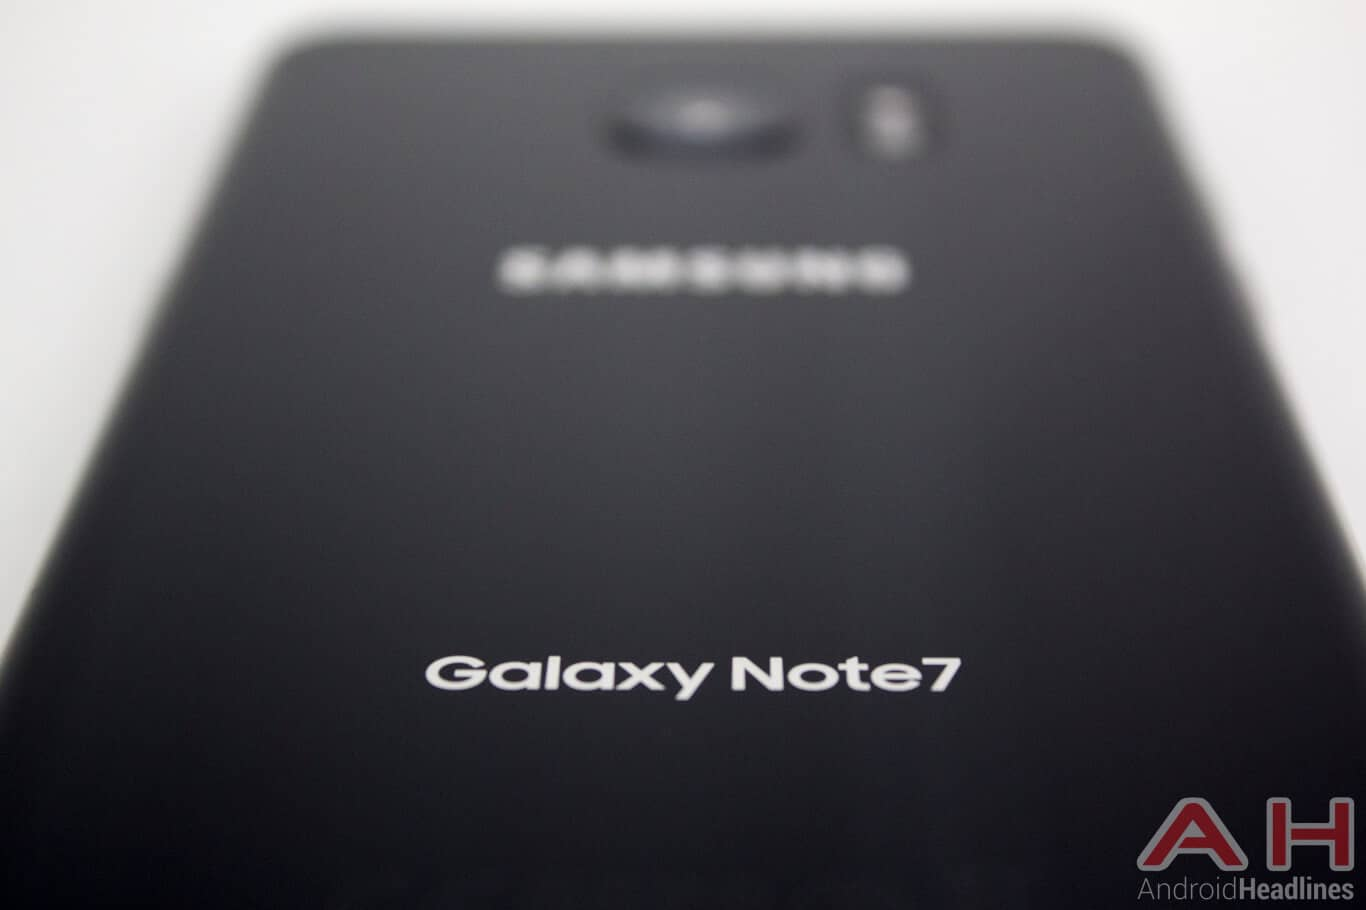 Samsung-Galaxy-Note-7-AH-NS-logo-1